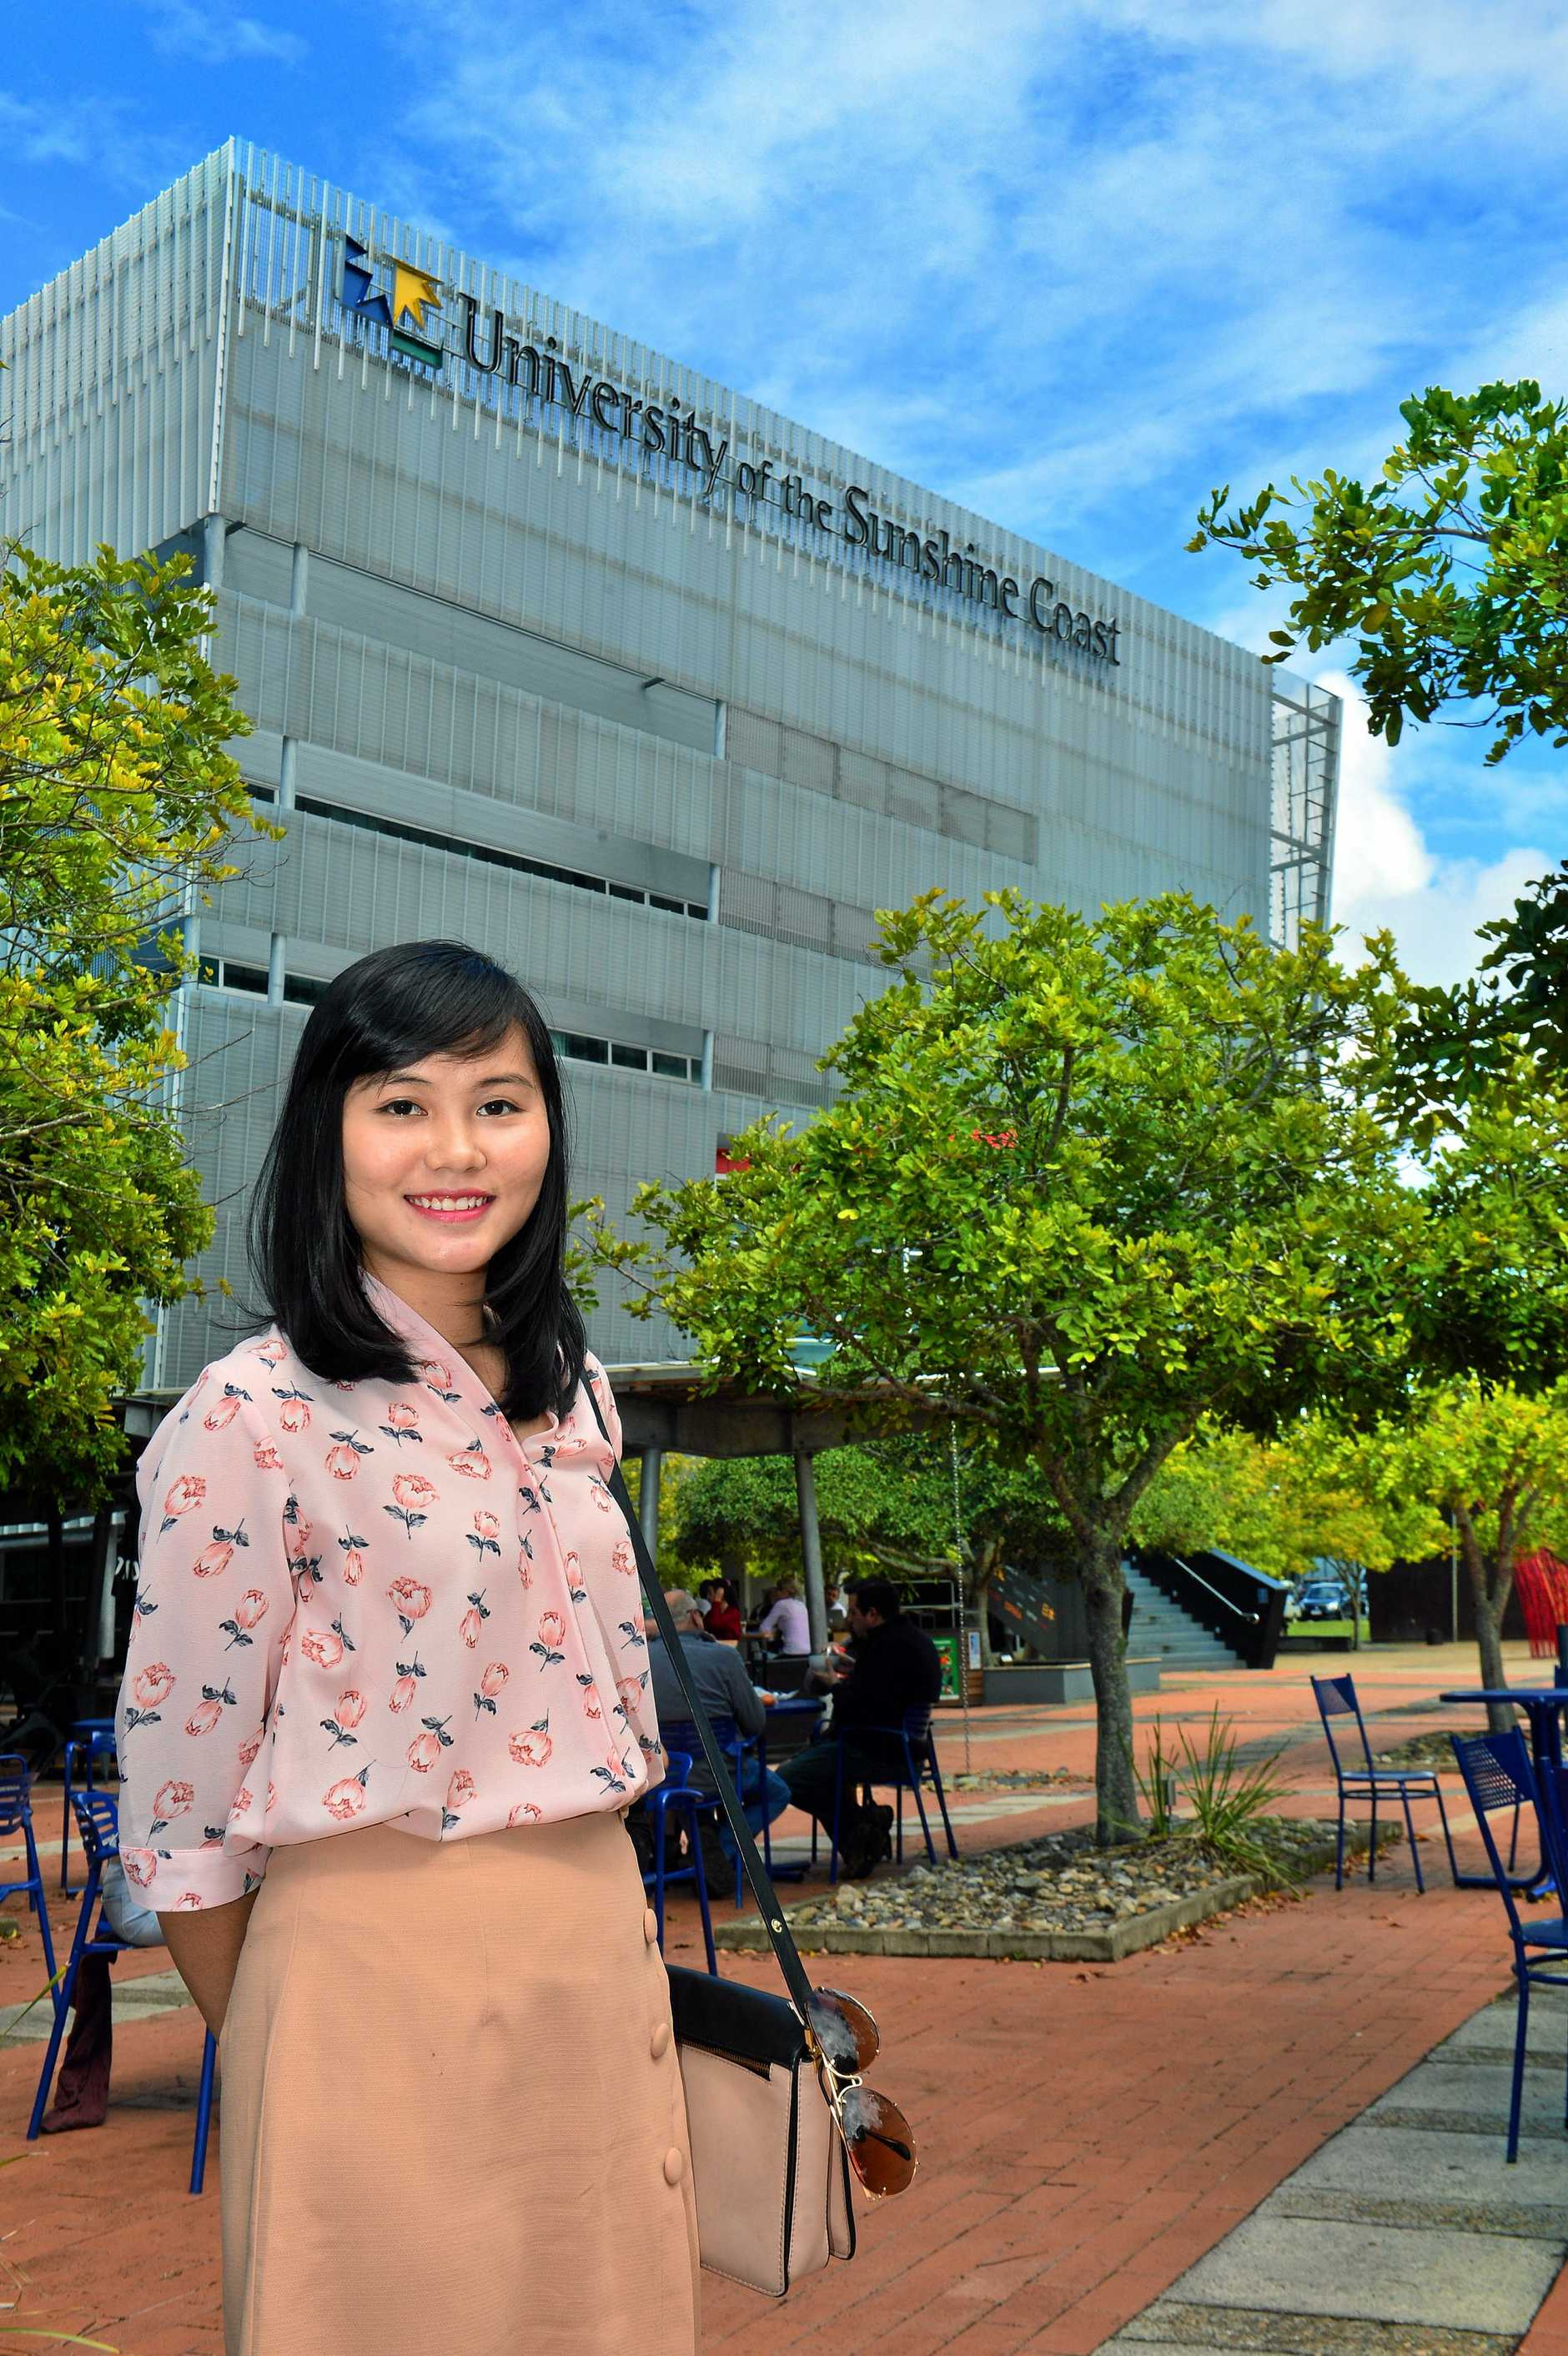 University of the Sunshine Coast student Huyen Vo is from Vietnam and is studying a Master of Social Work.